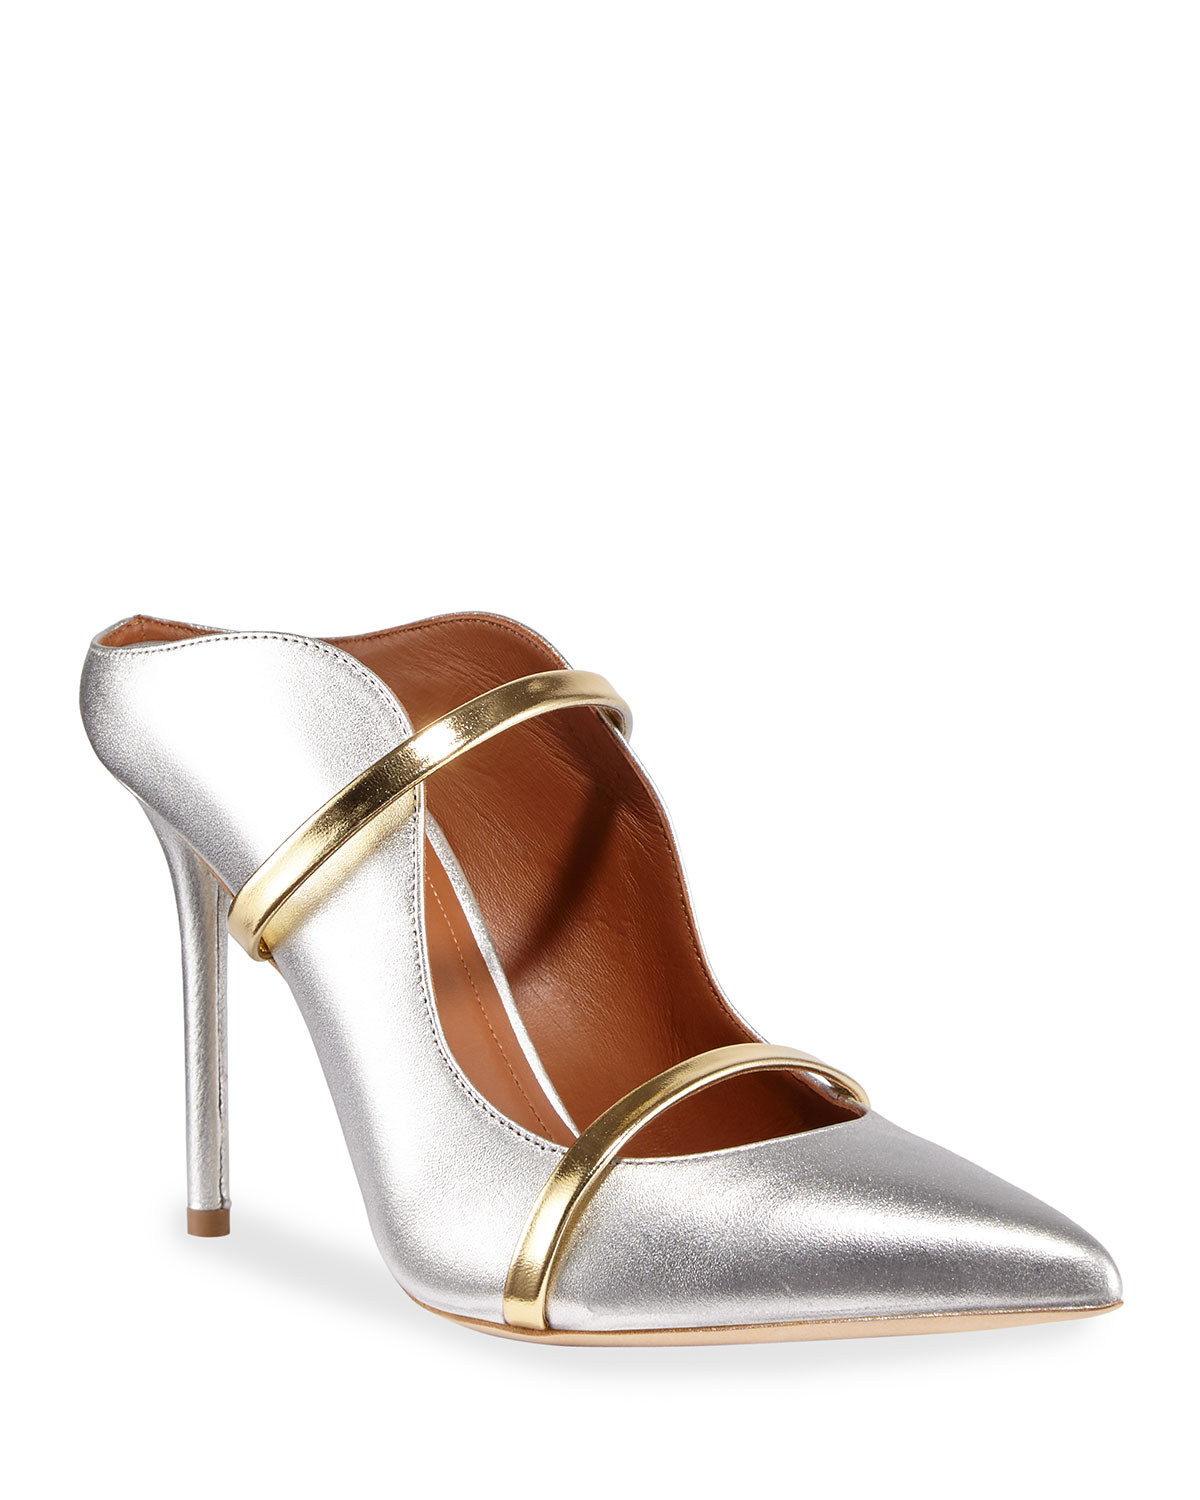 Maureen 100mm Metallic Leather Two-Strap Mules